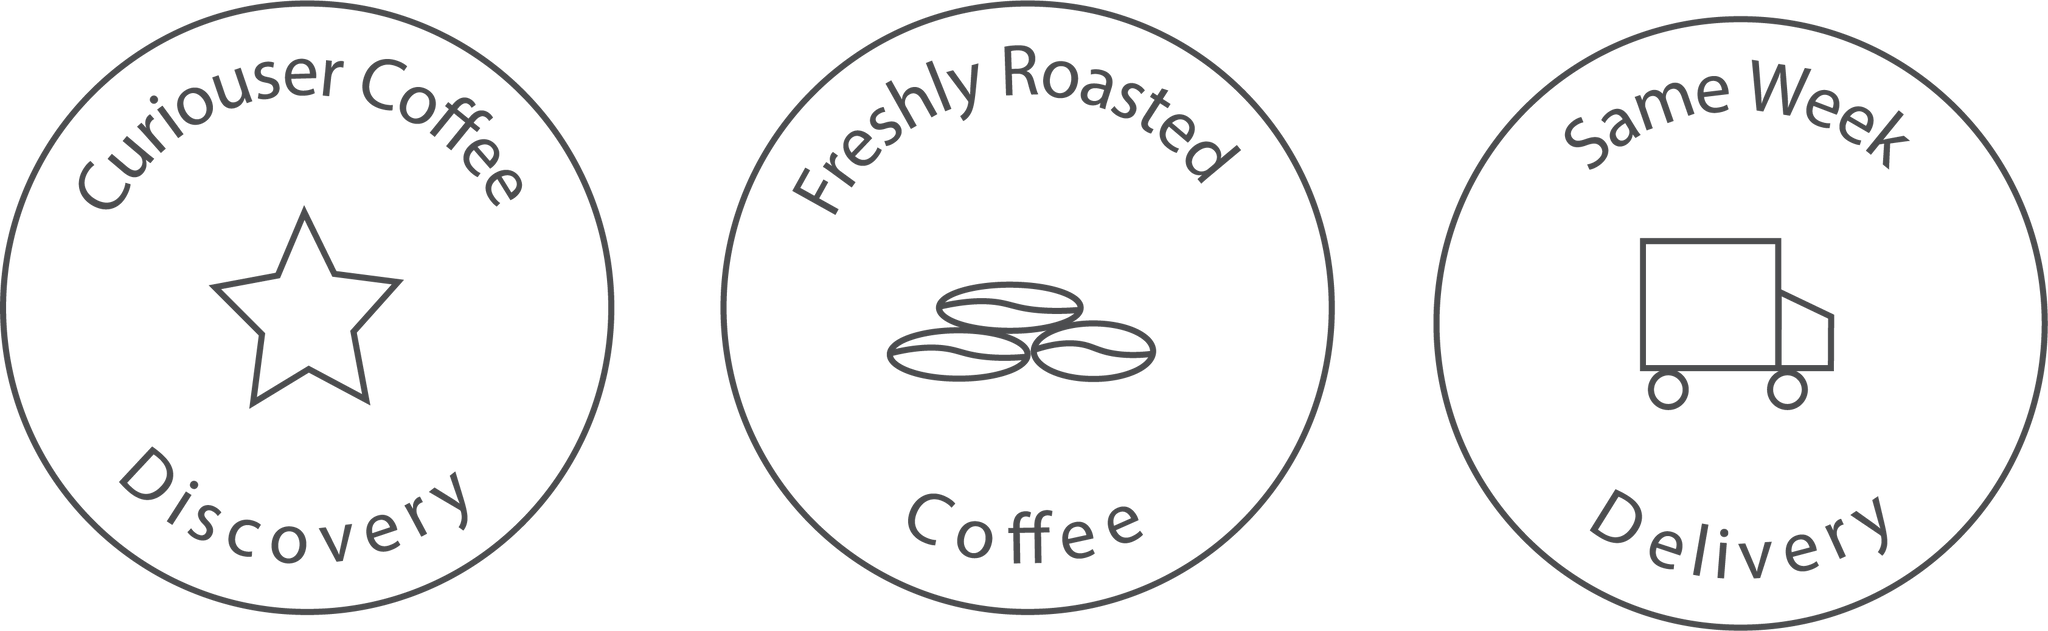 rabbit hole roasters curiouser coffee icon